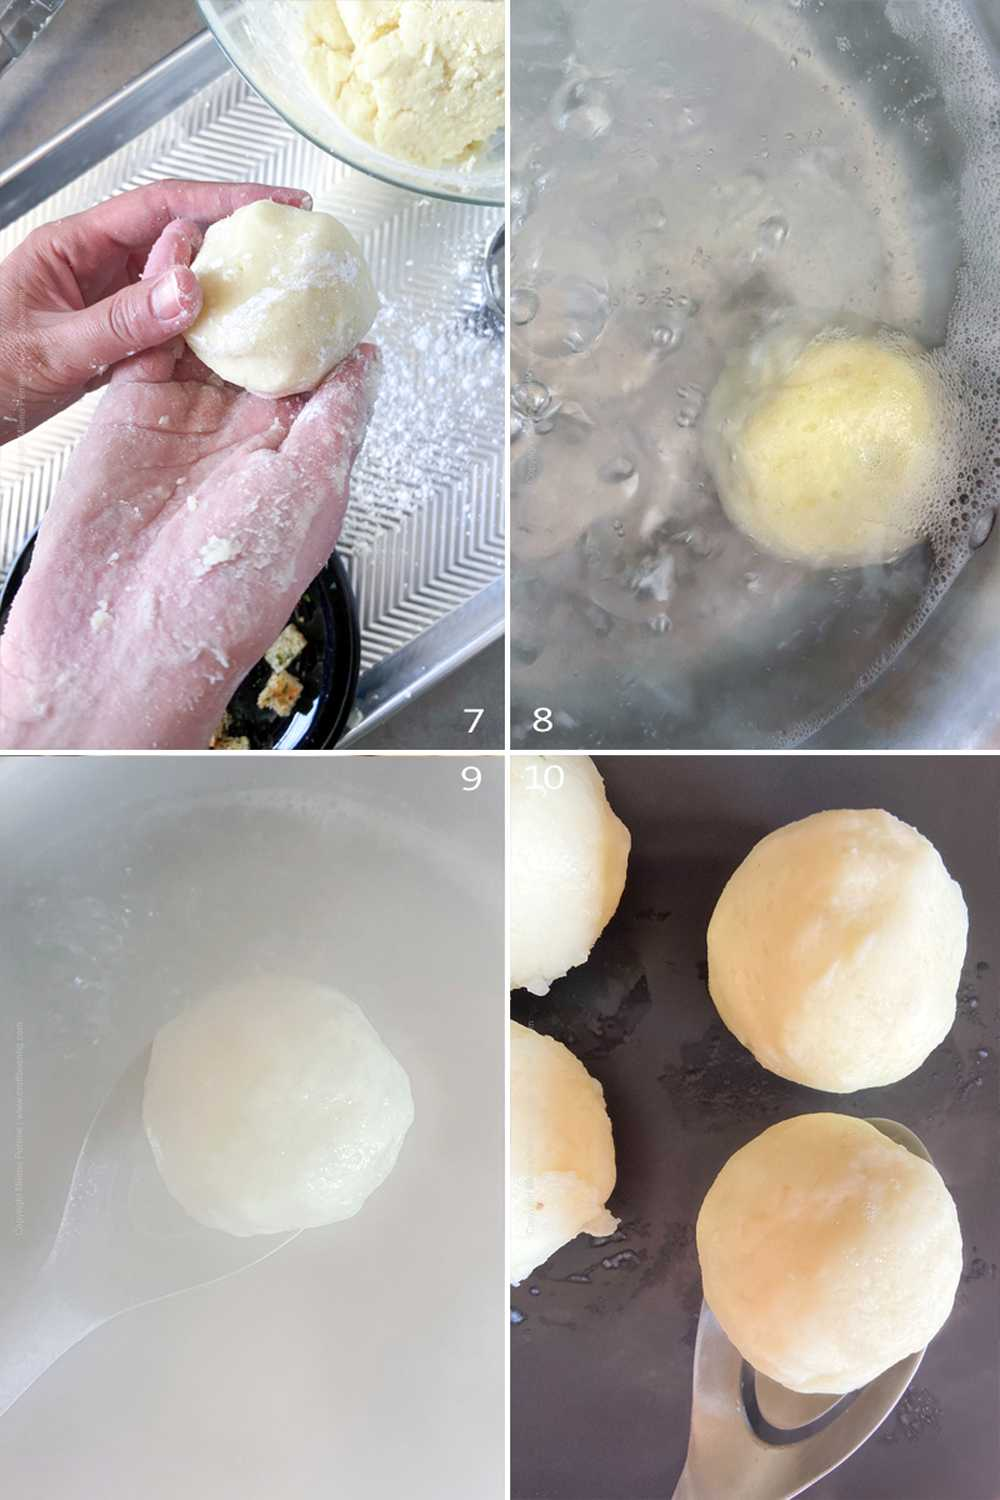 How to make potato dumplings - step by step image collage part 2